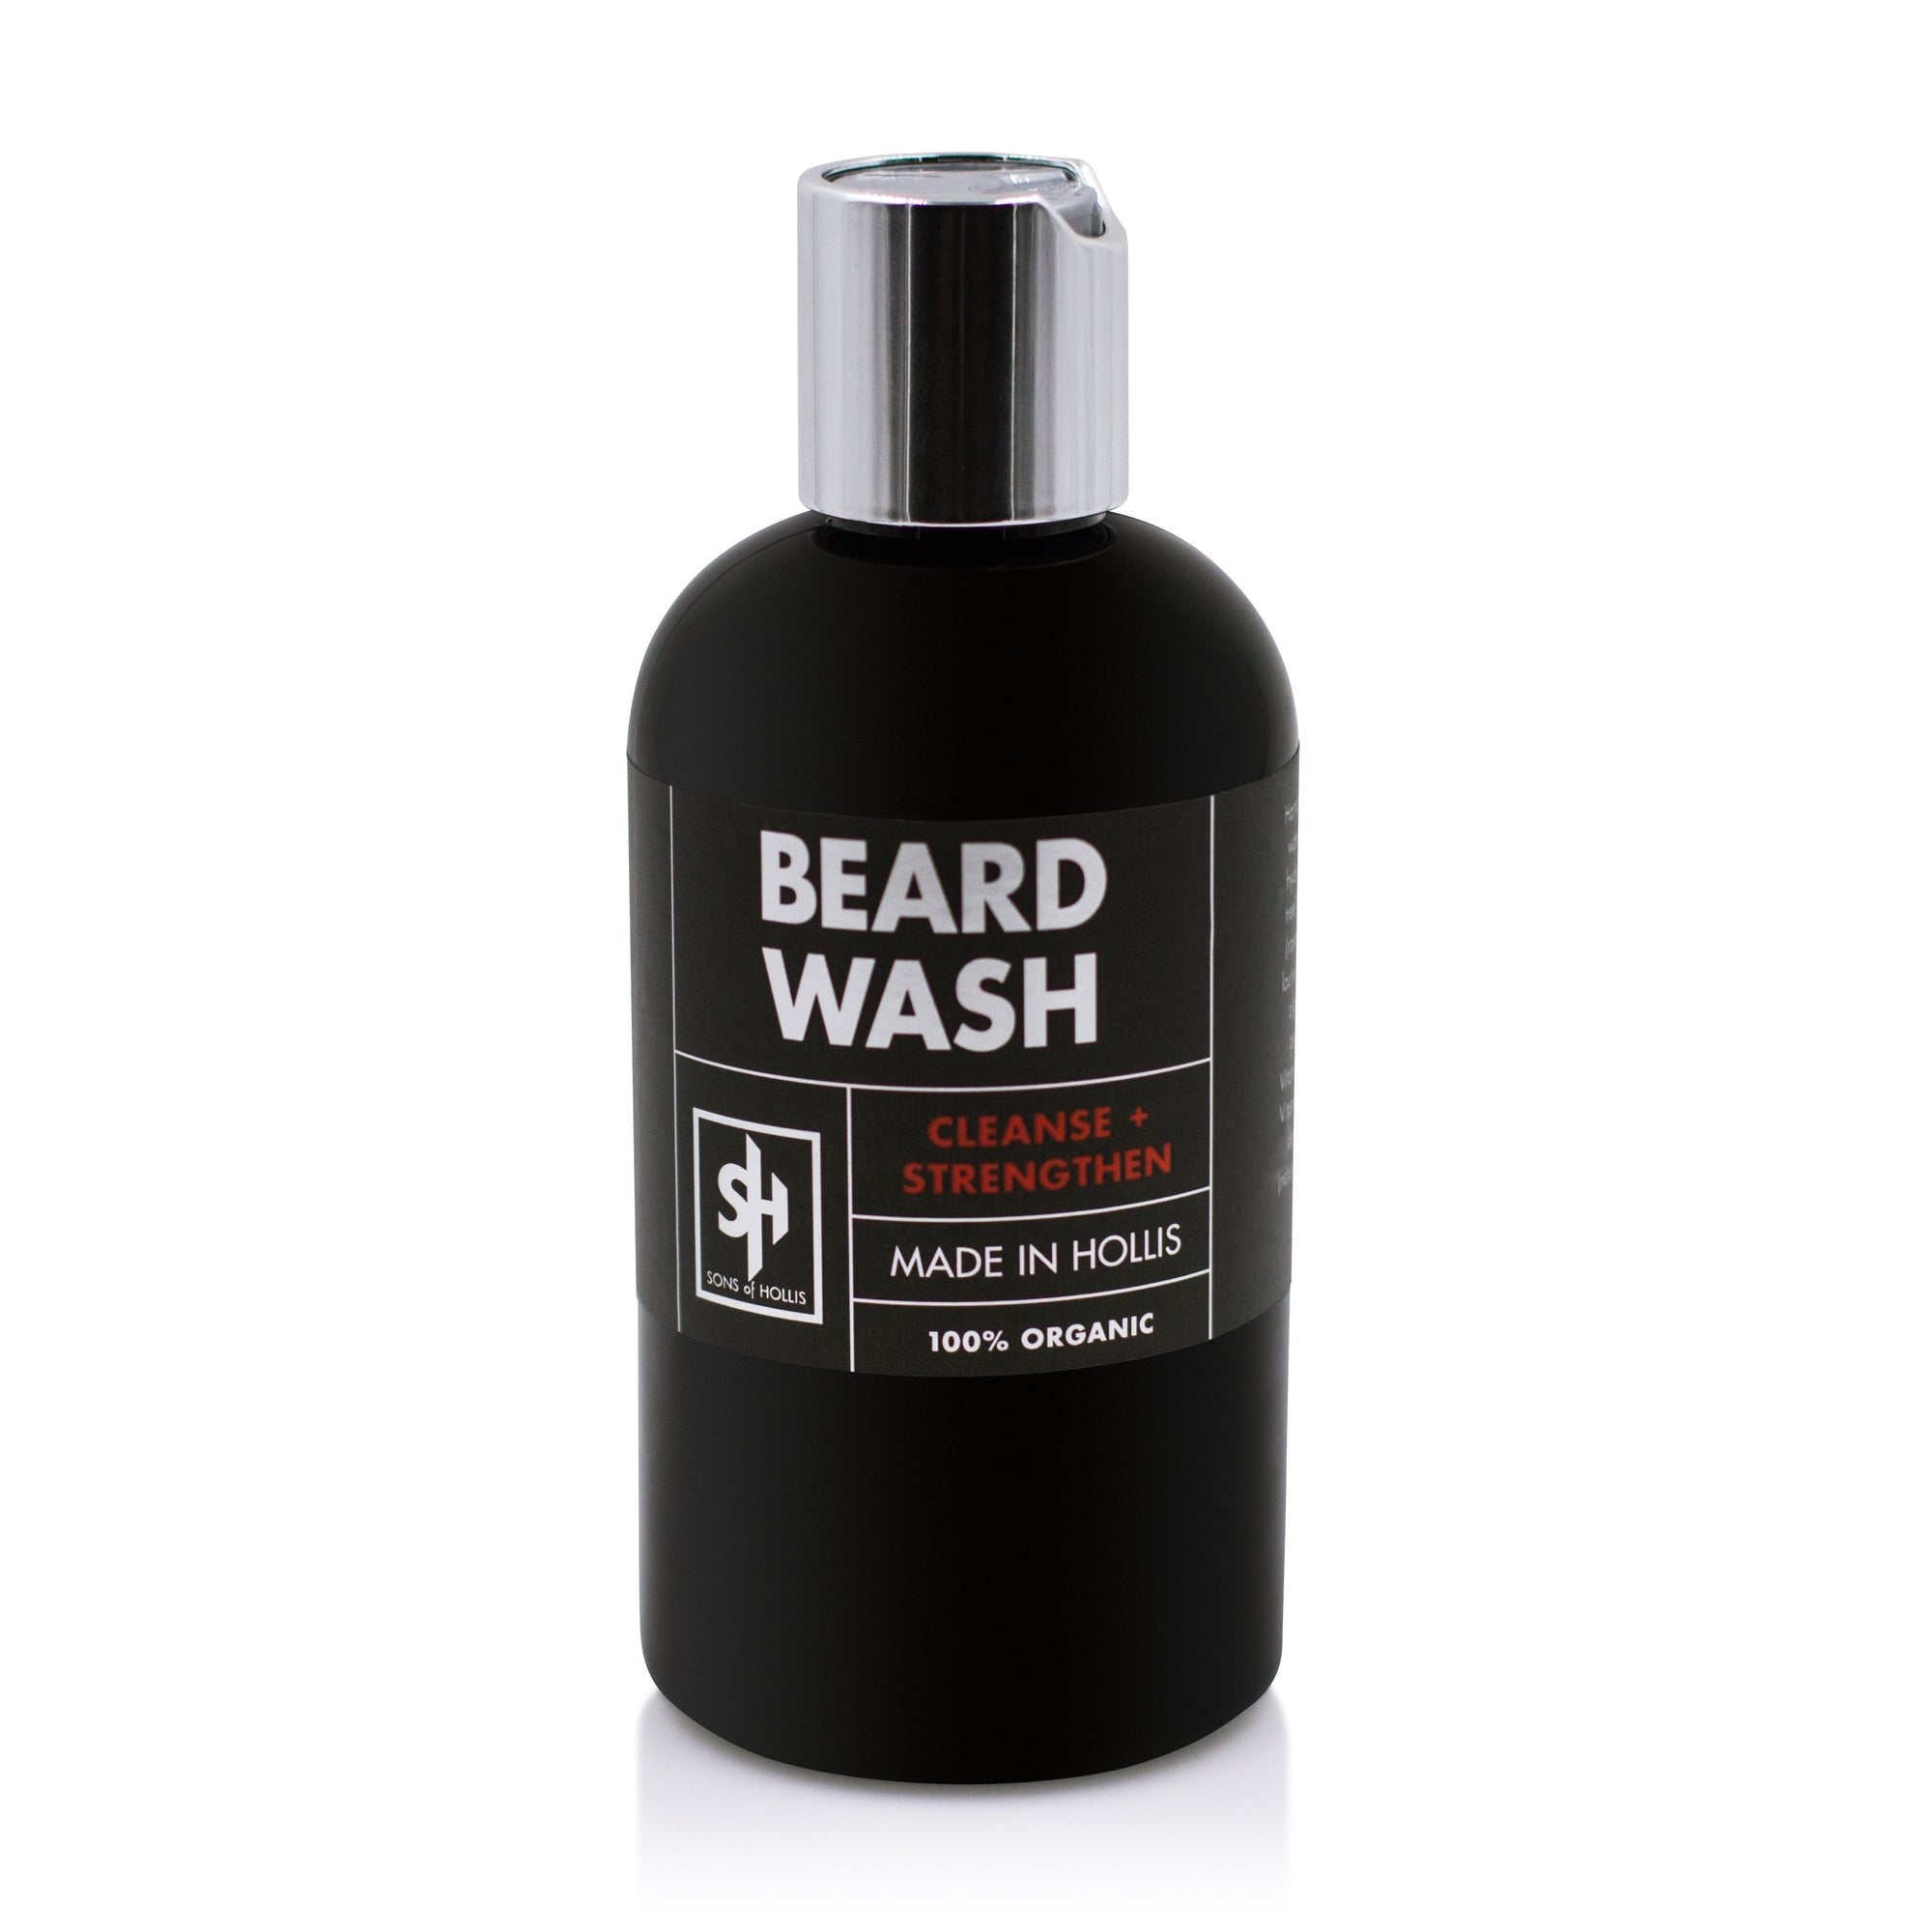 Cleansing Beard Wash